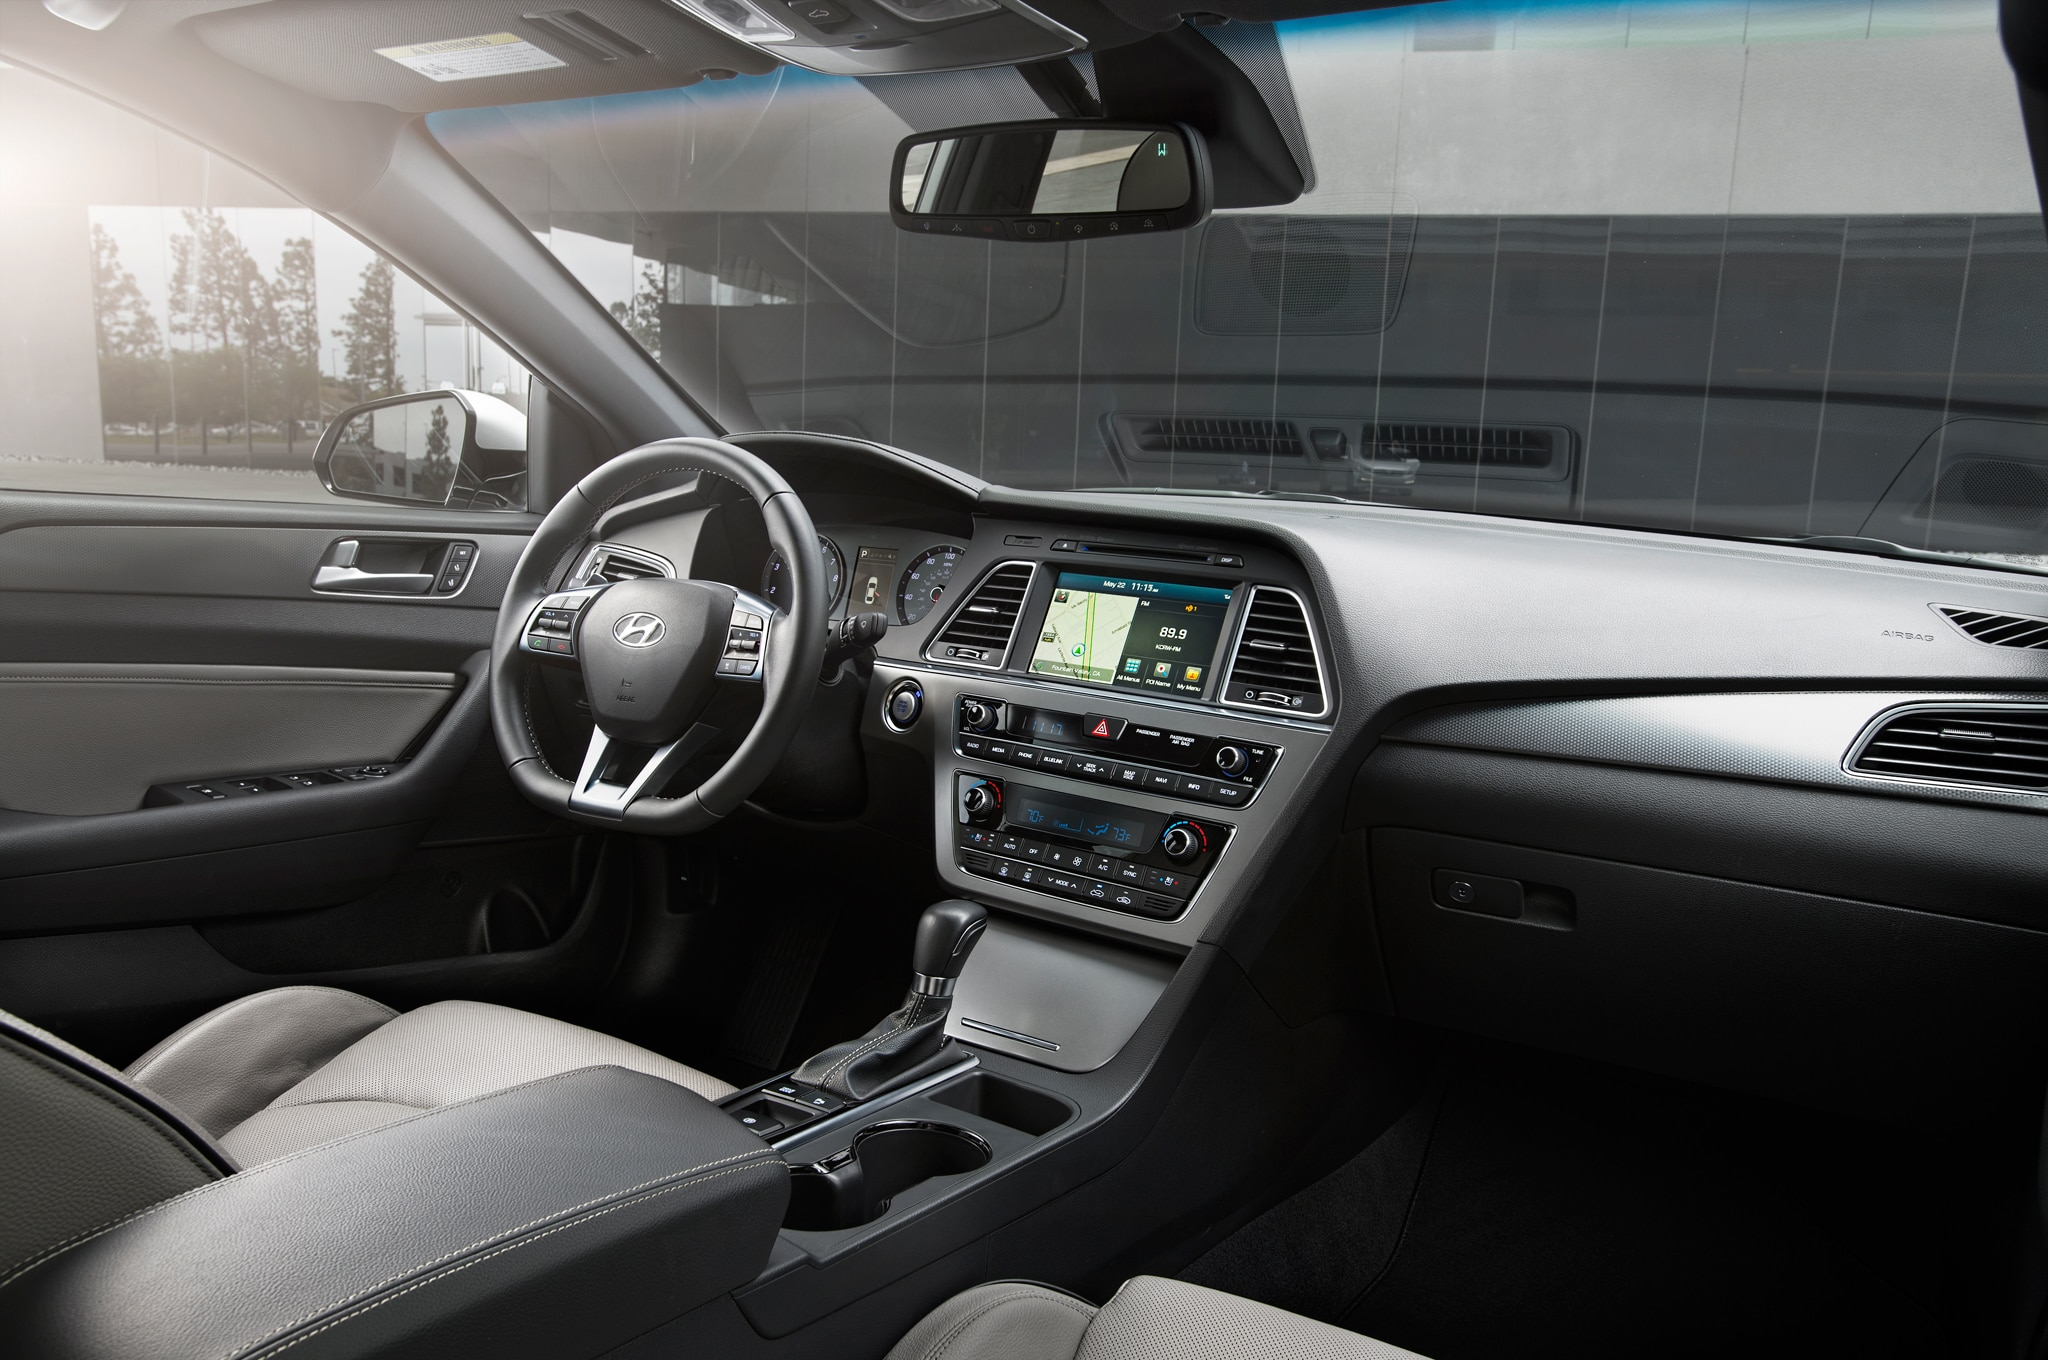 2015 Hyundai Sonata Se Interior Images Galleries With A Bite